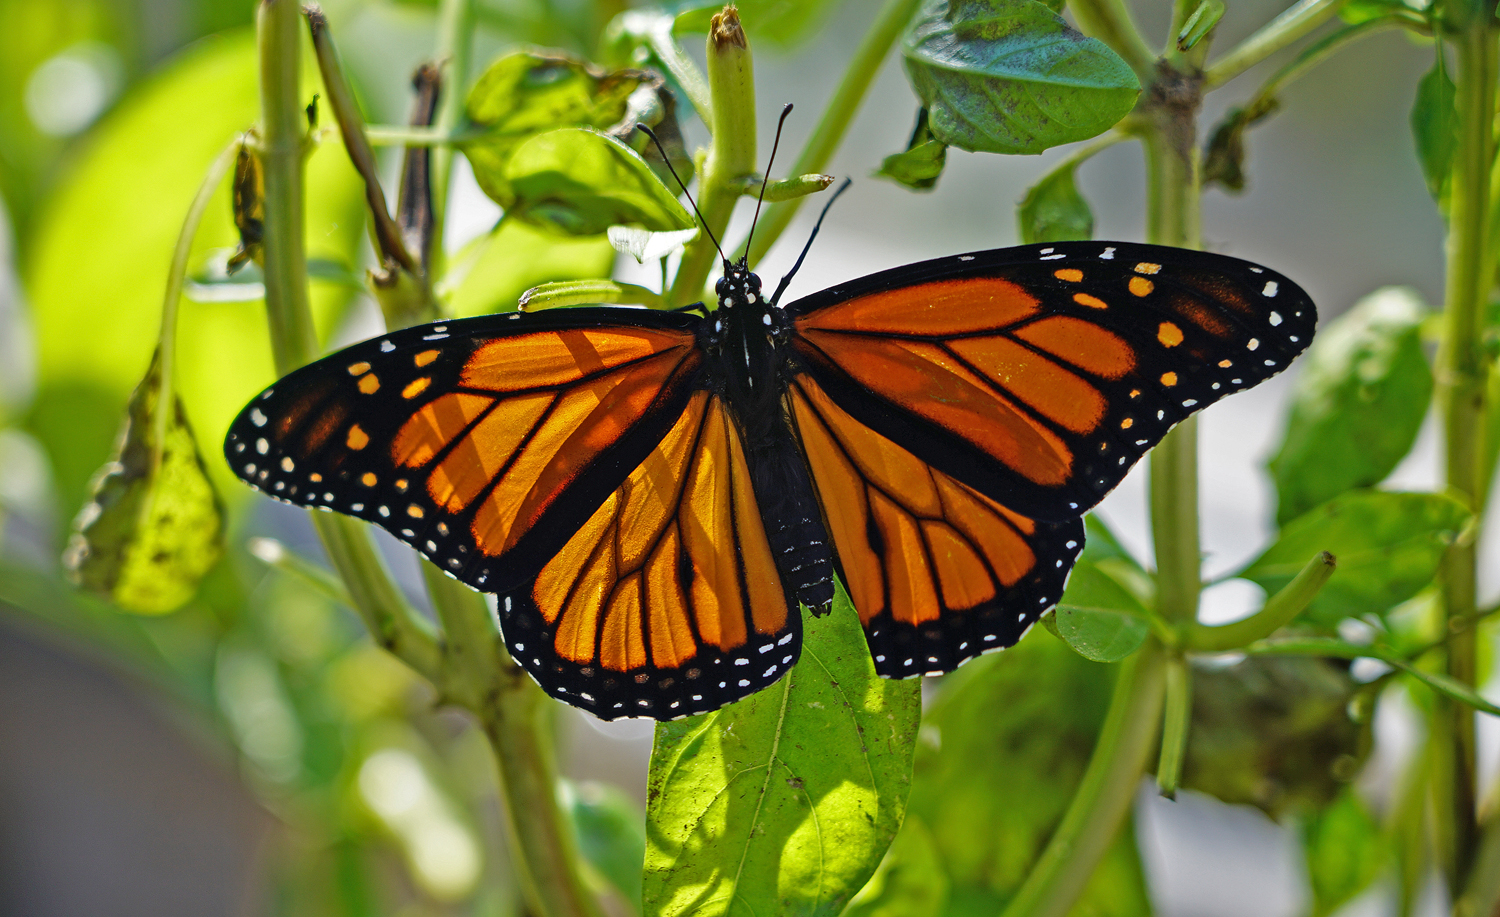 greenhouse hatched monarch author sava gregory an and verena